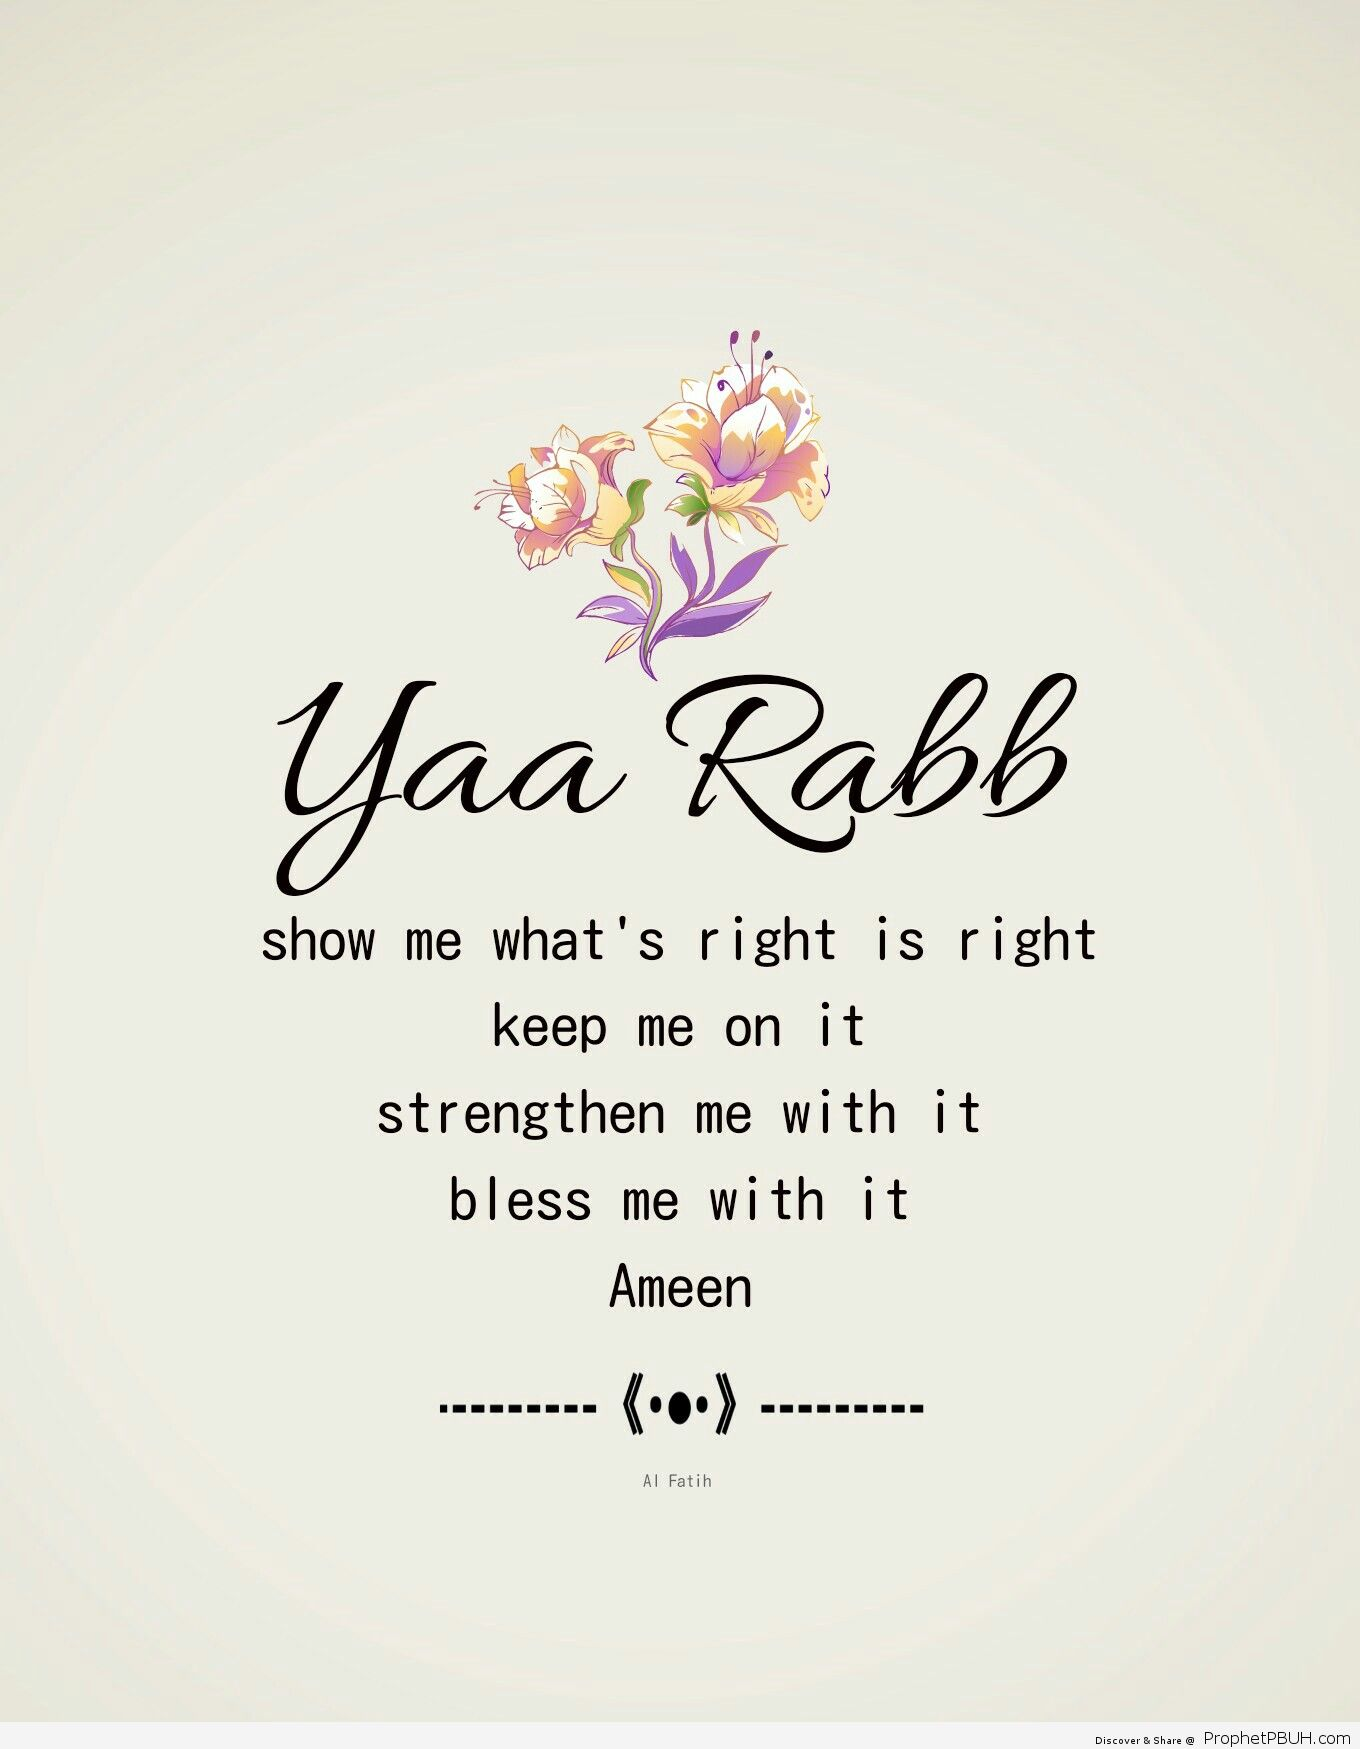 May Allah Keep us on the right path